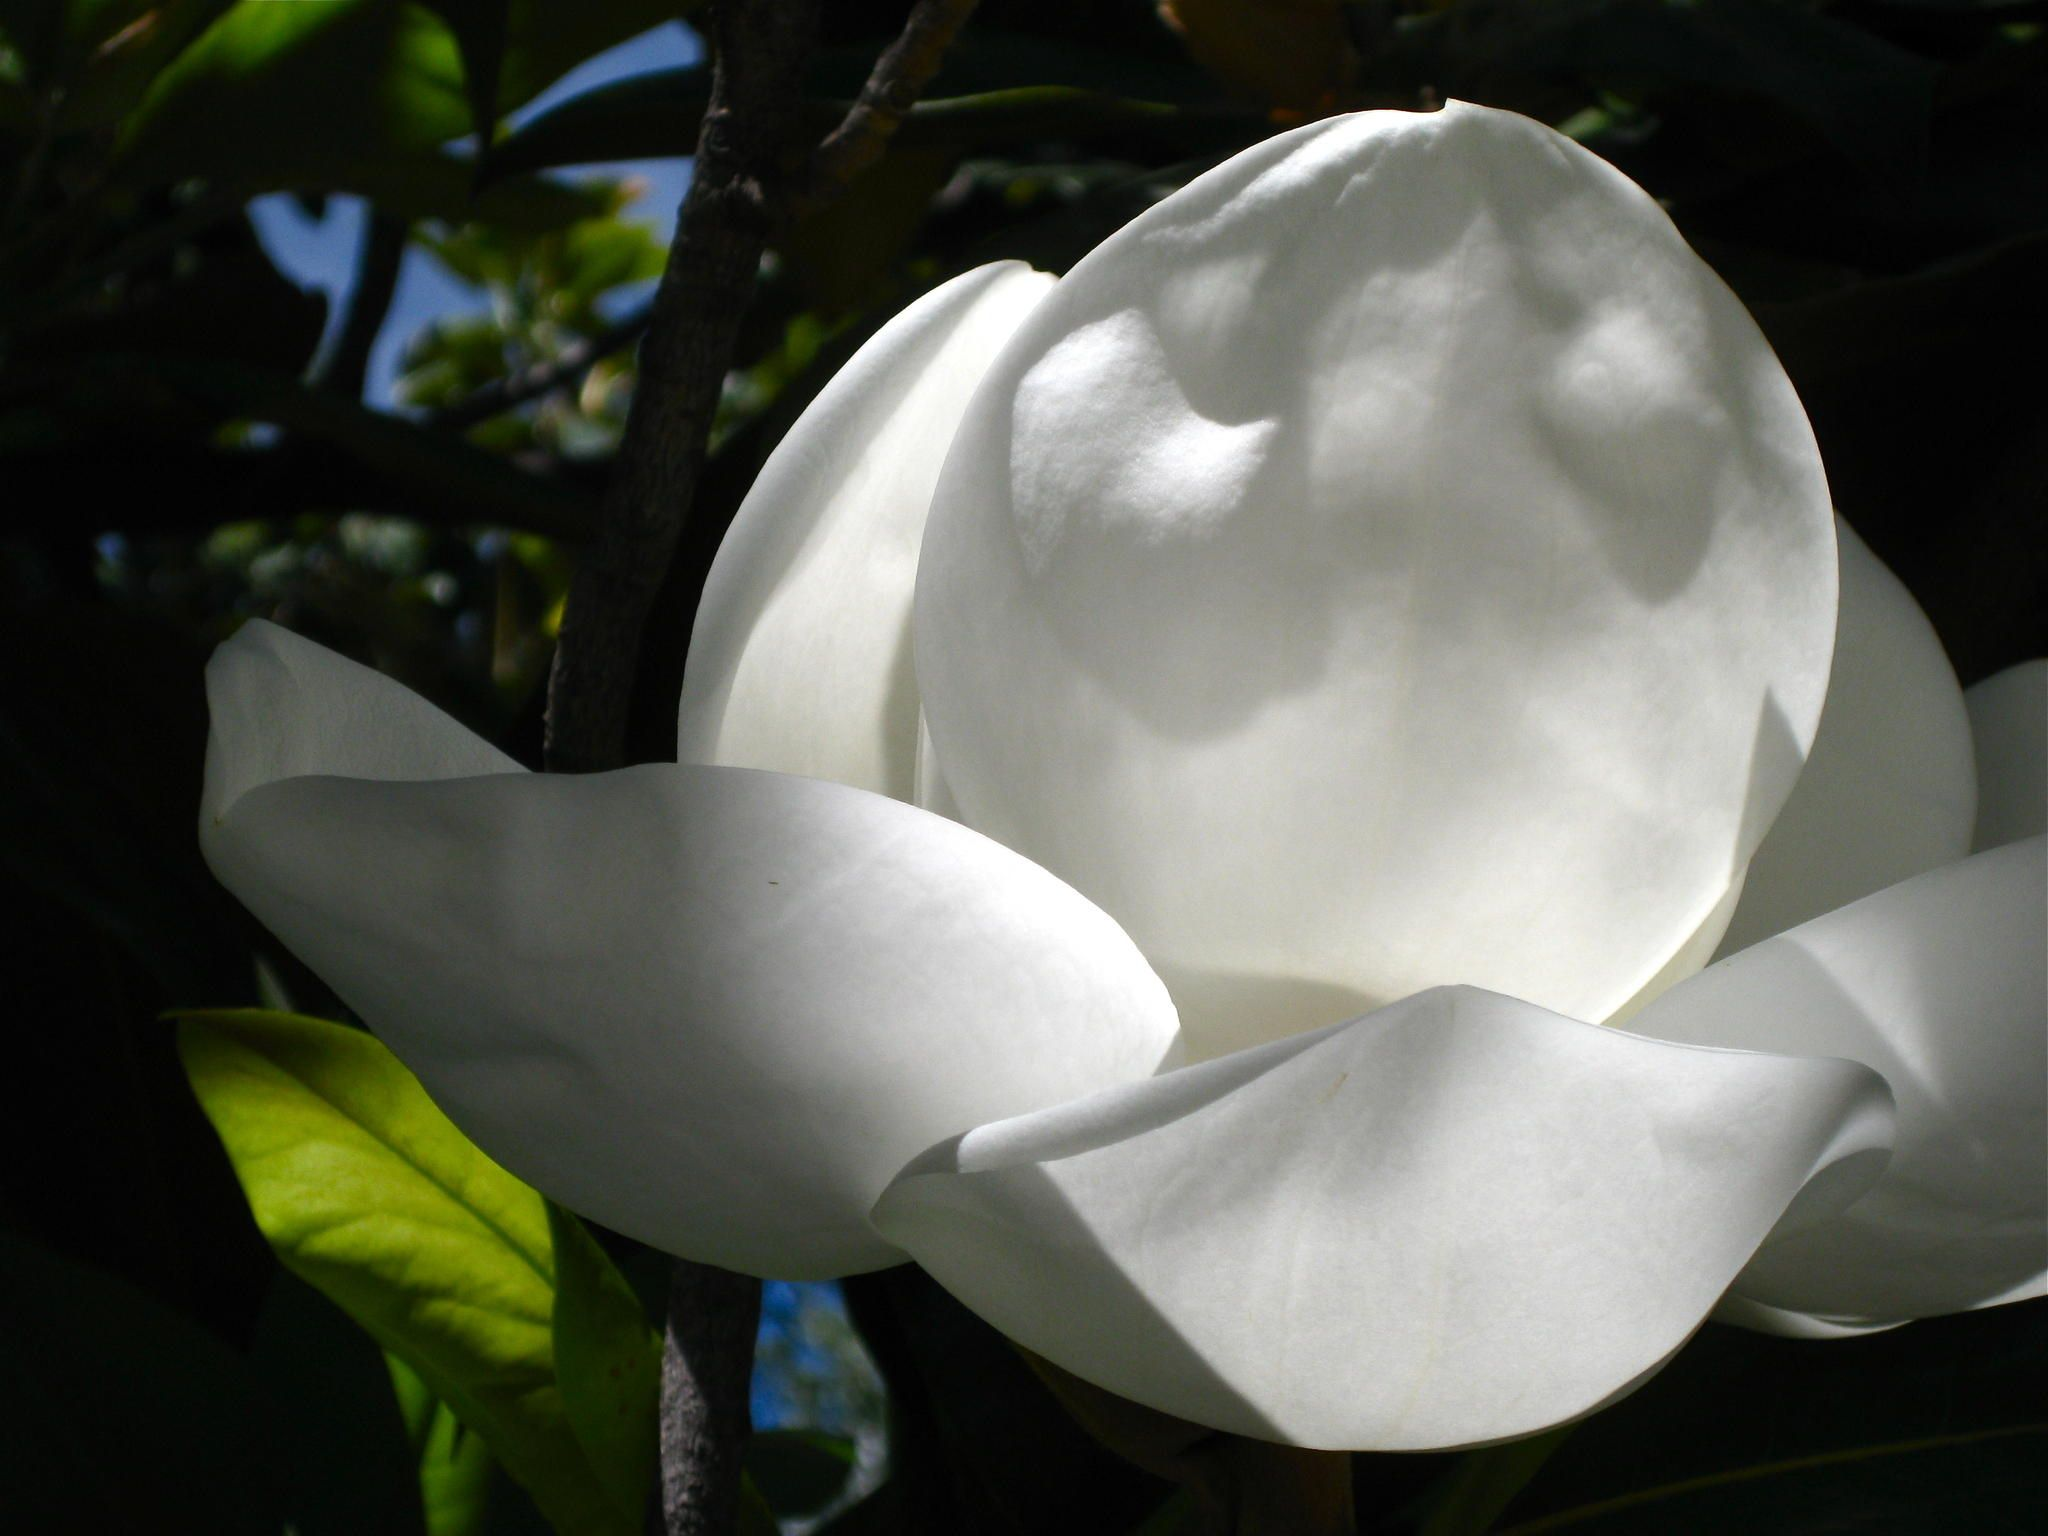 Pin By Kristine On Plants Magnolia Plant Species Magnolia Flower Planting Flowers